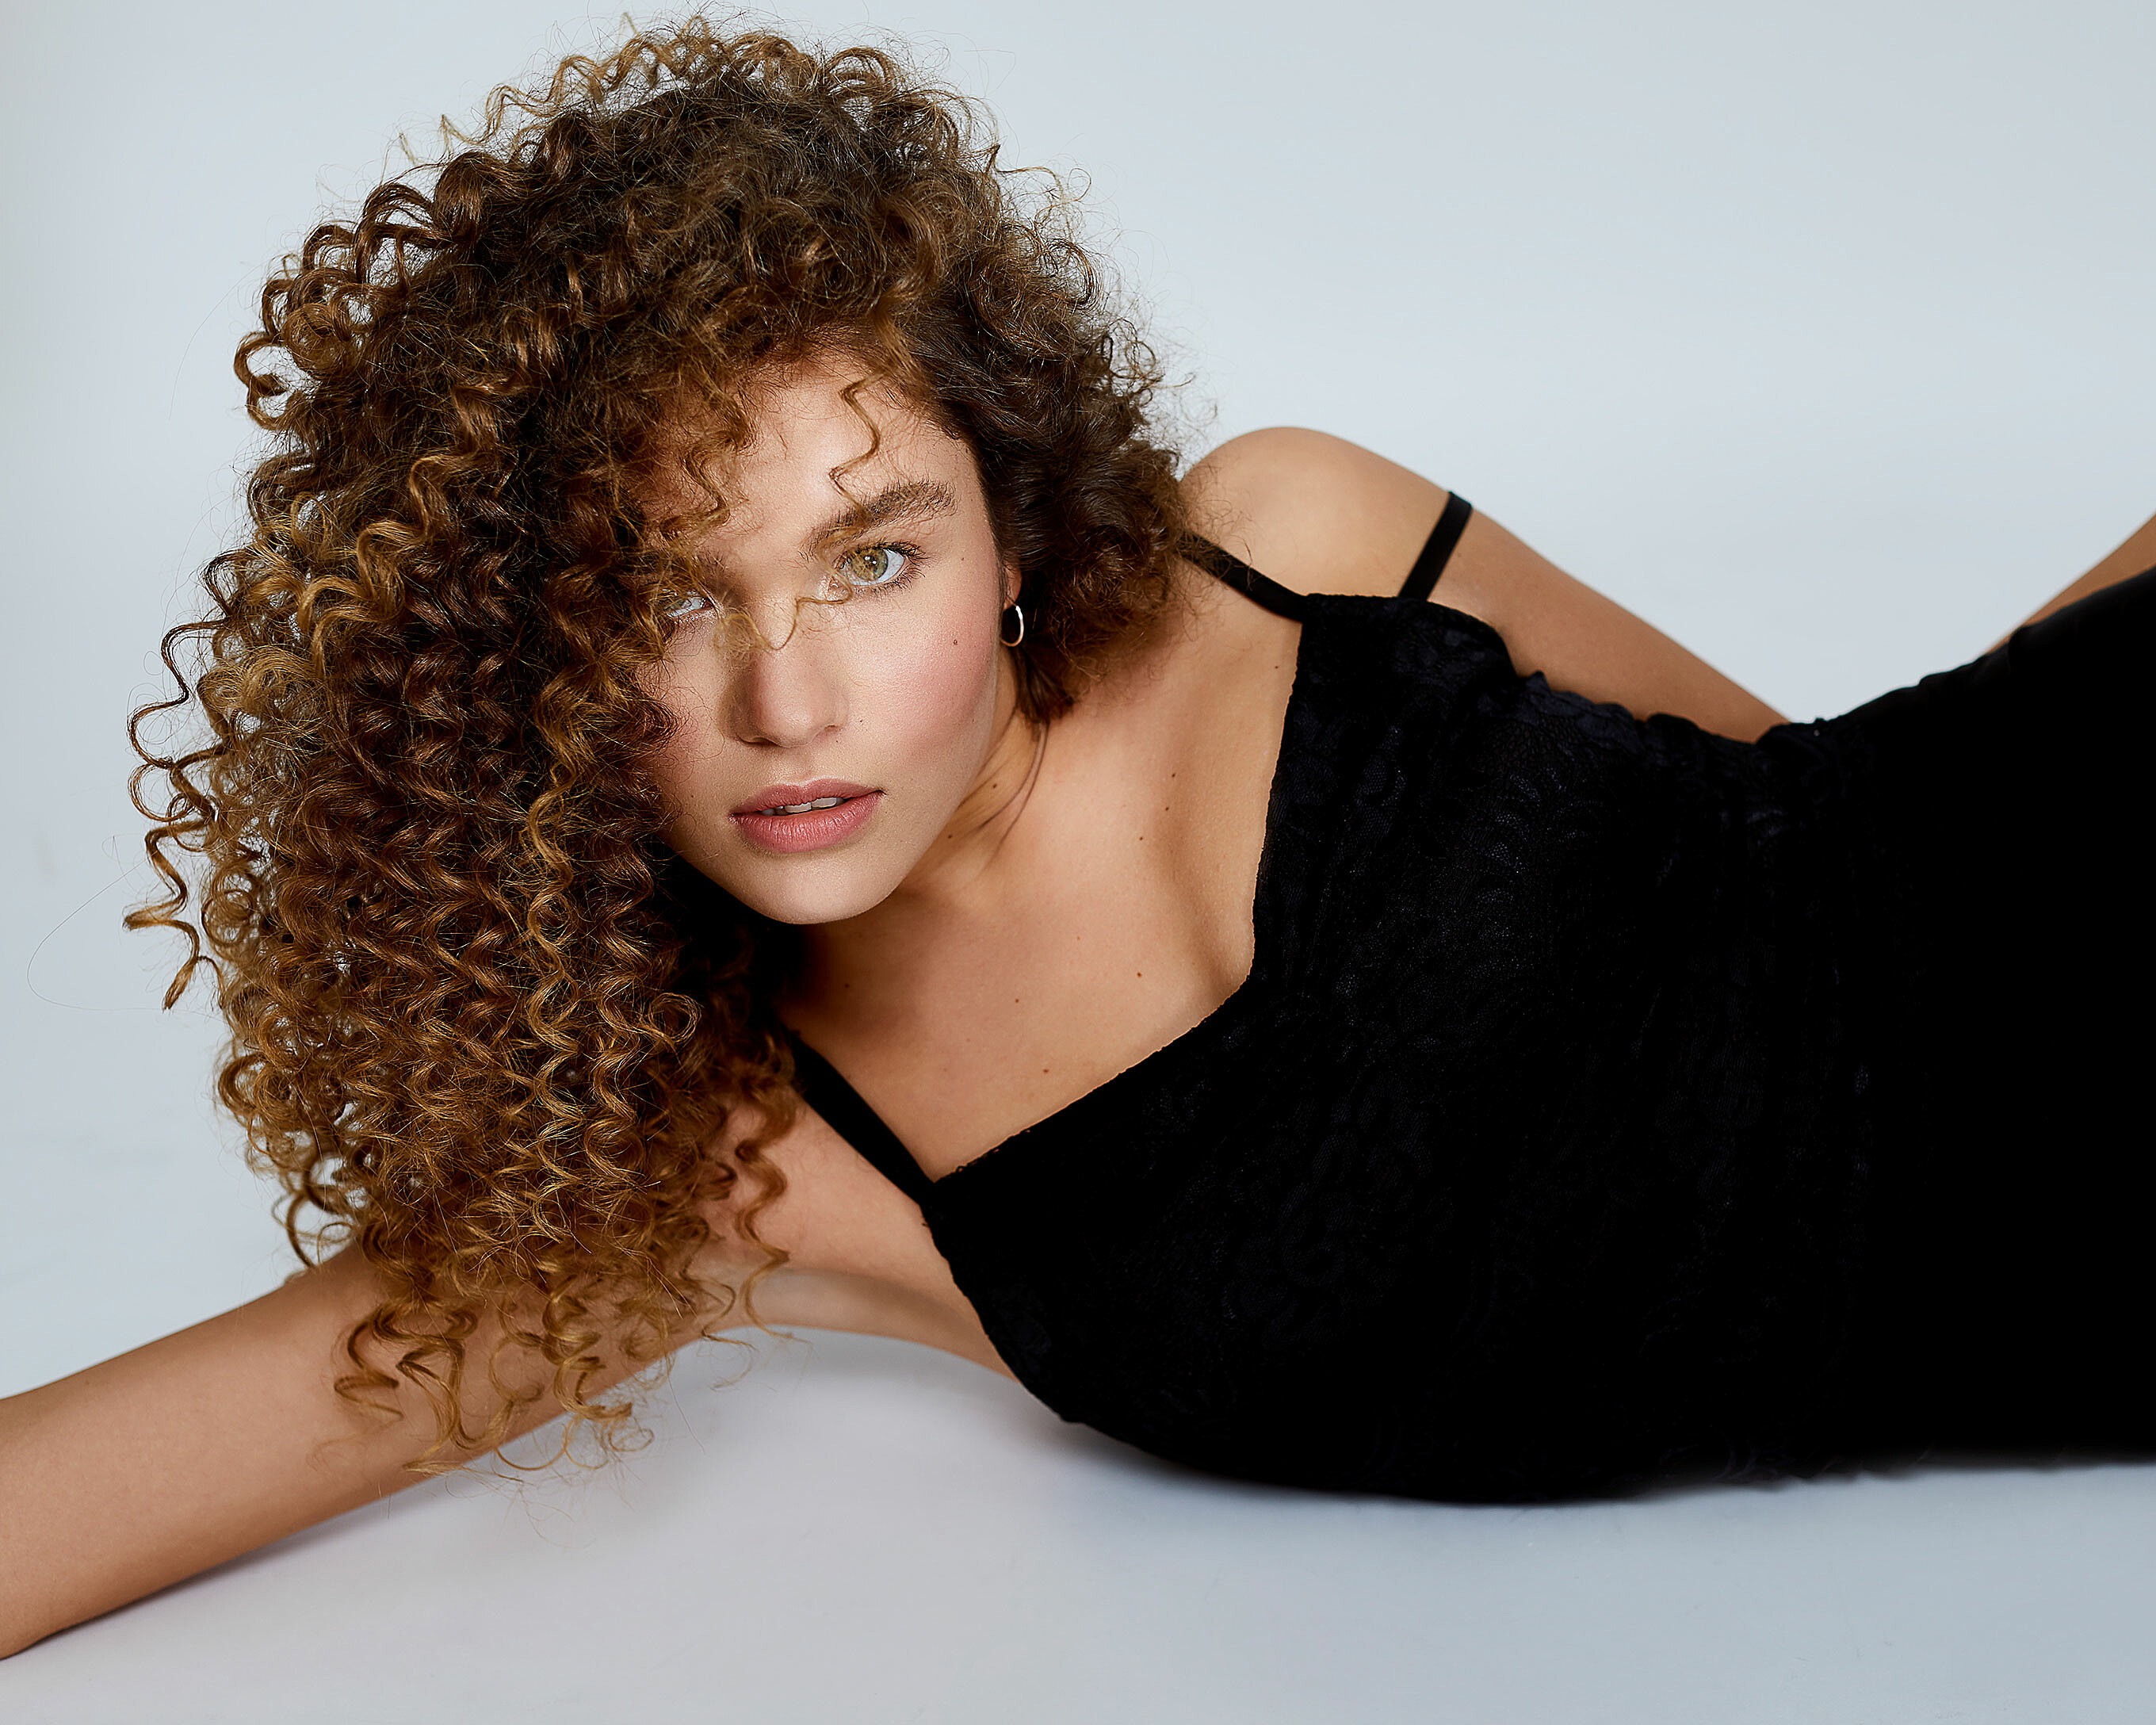 A female model with big curly hair and a natural makeup. Lay on the ground in a bleck dress